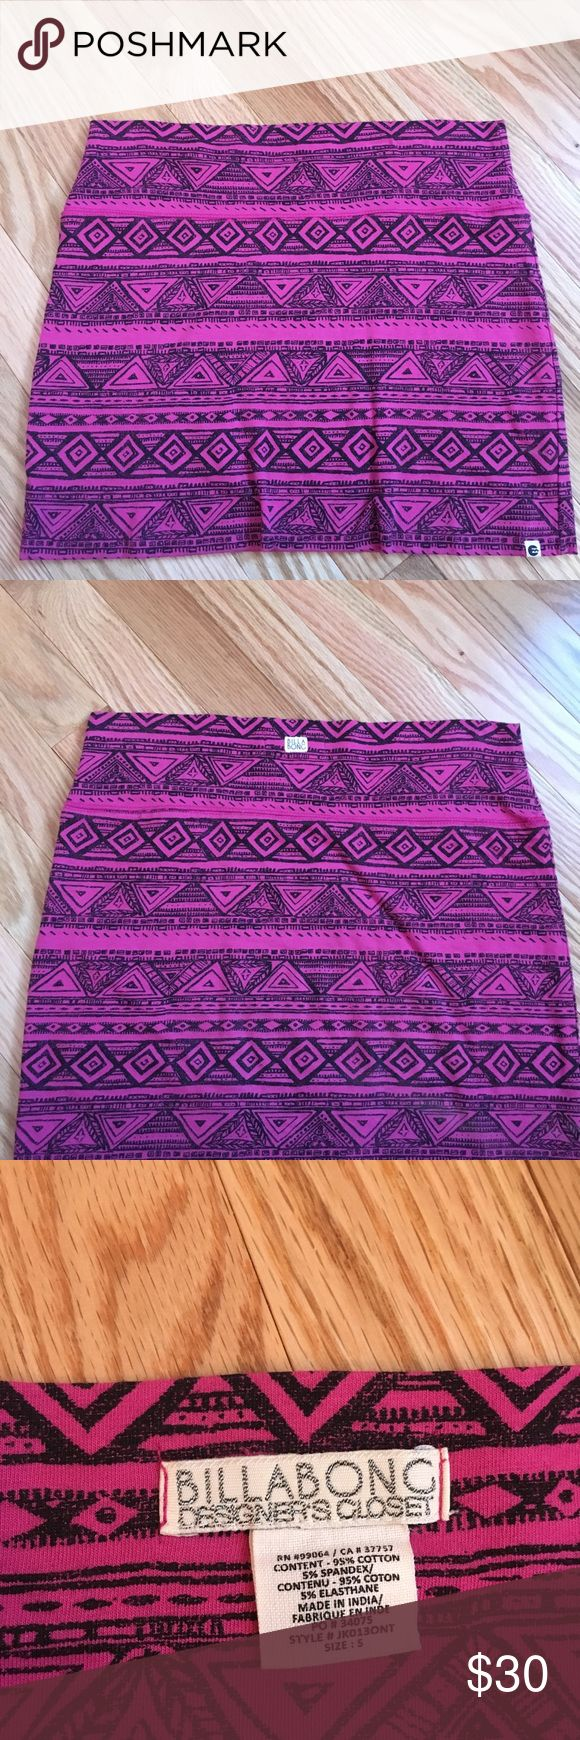 Billabong Tribal print mini skirt worn once!!! in great condition, pink and black tribal pattern, billabong Billabong Skirts Mini